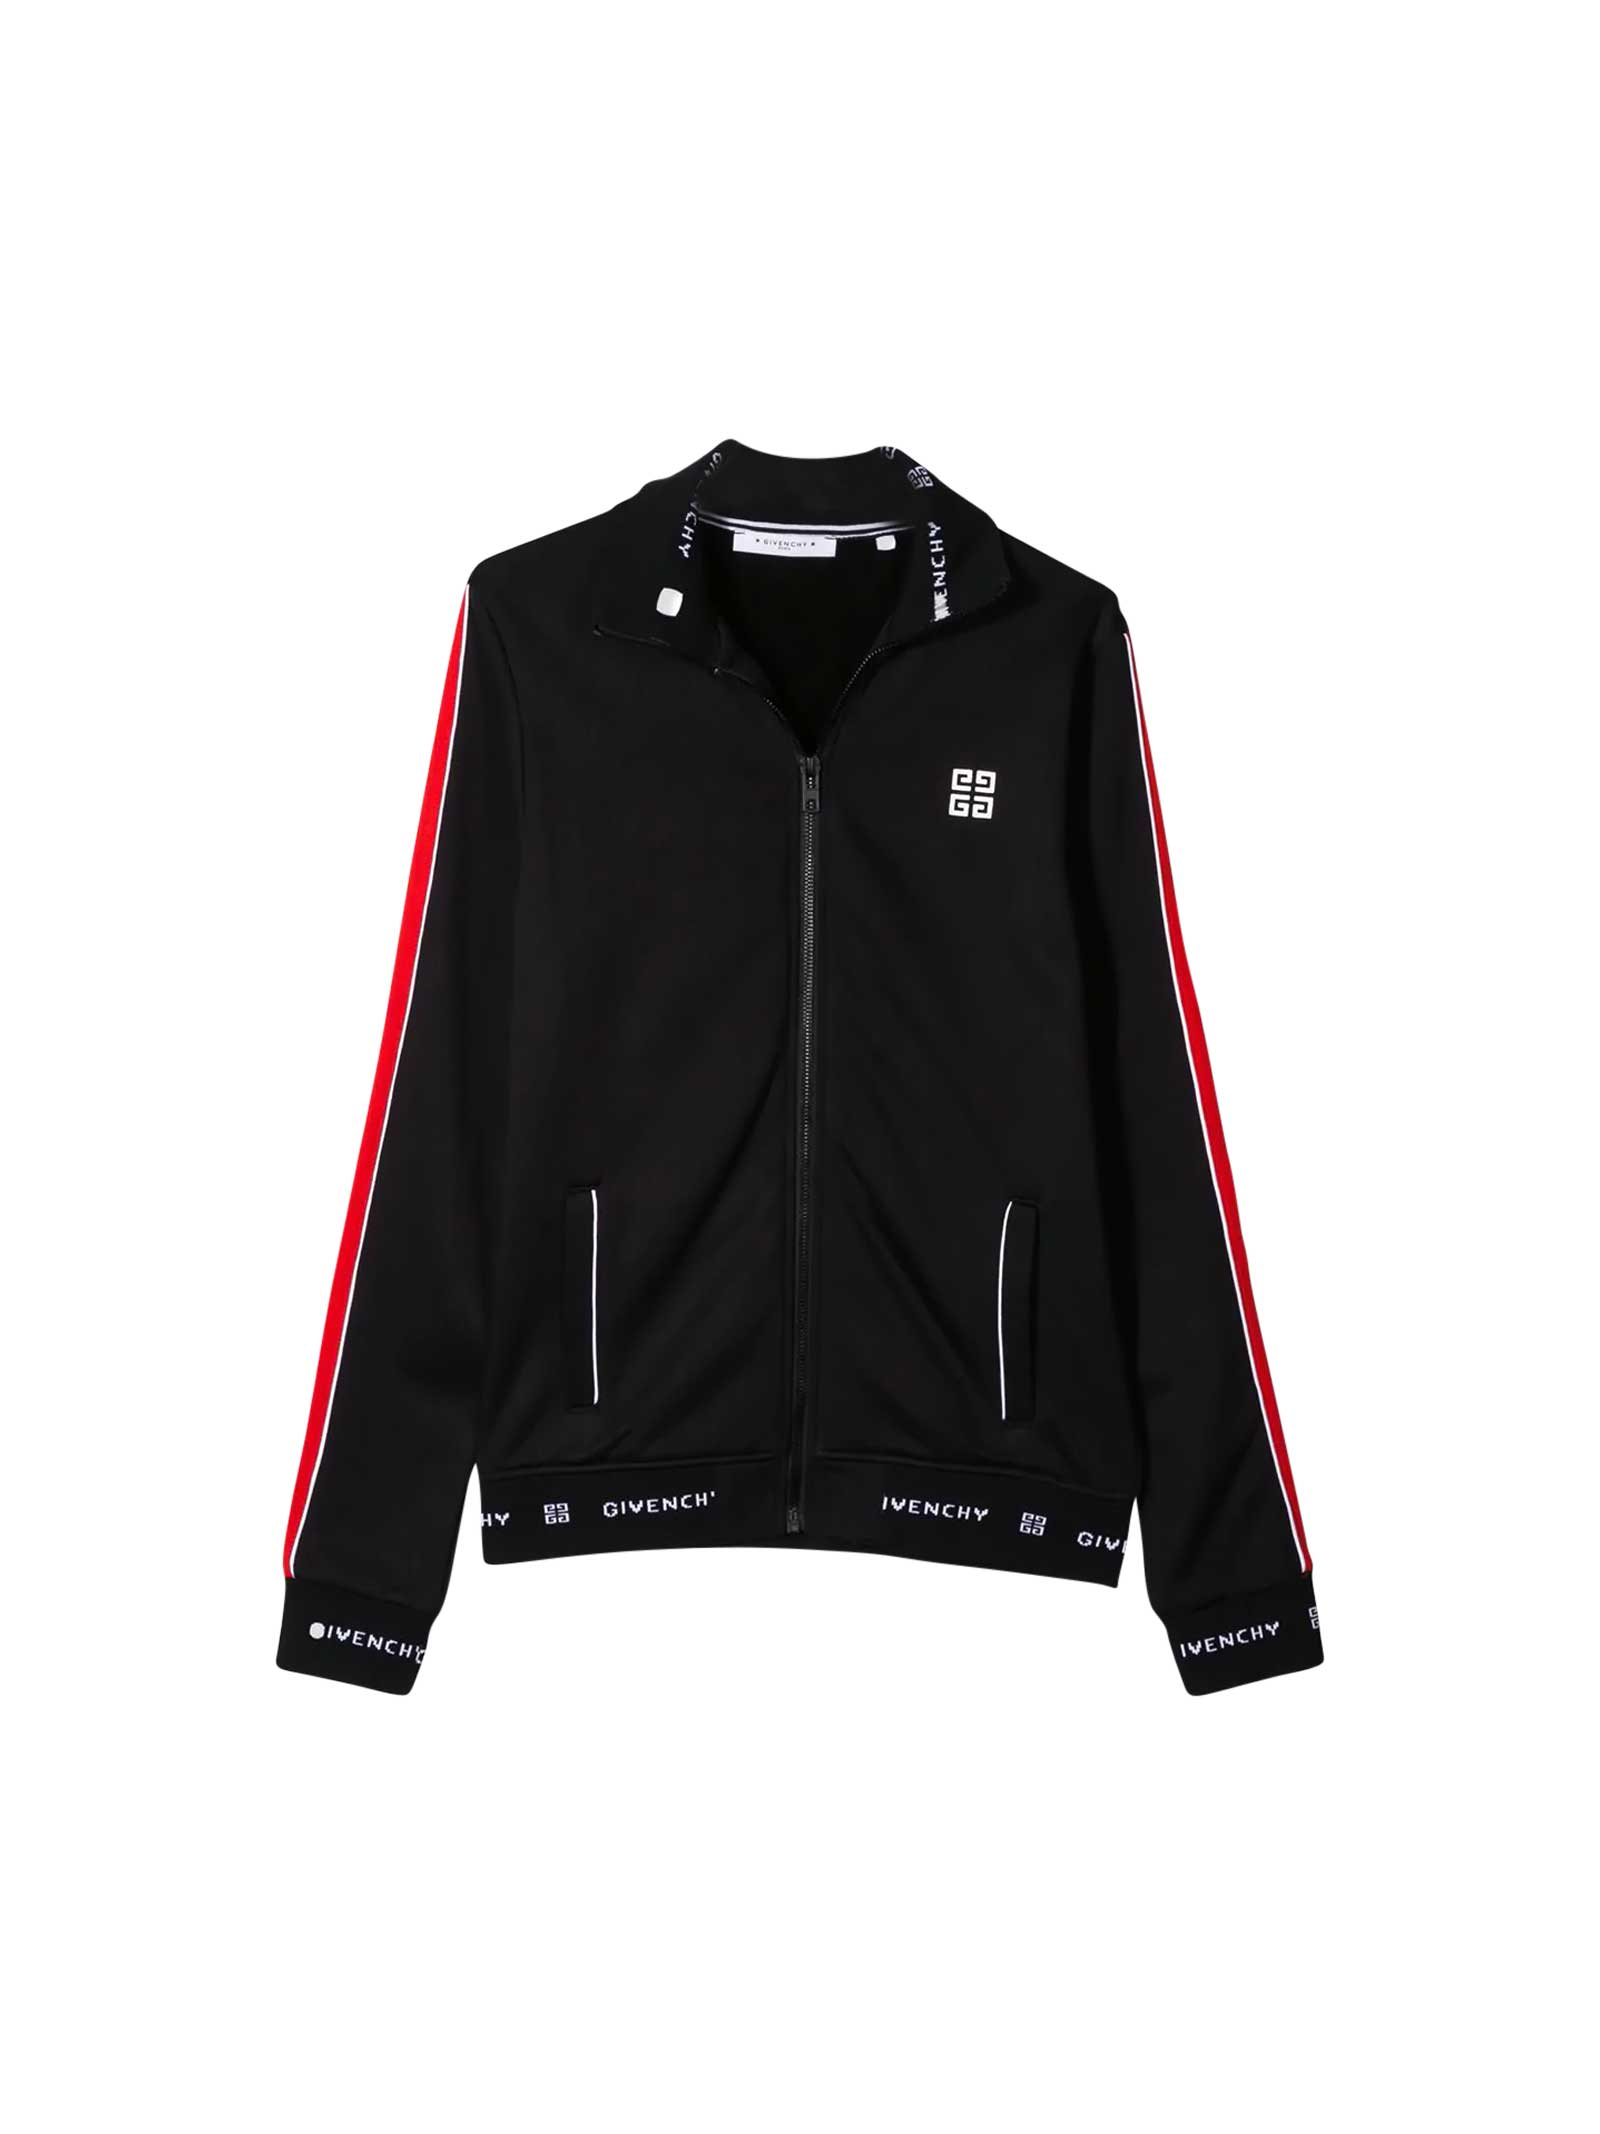 Givenchy Kids' Black Sport Jacket In Nero